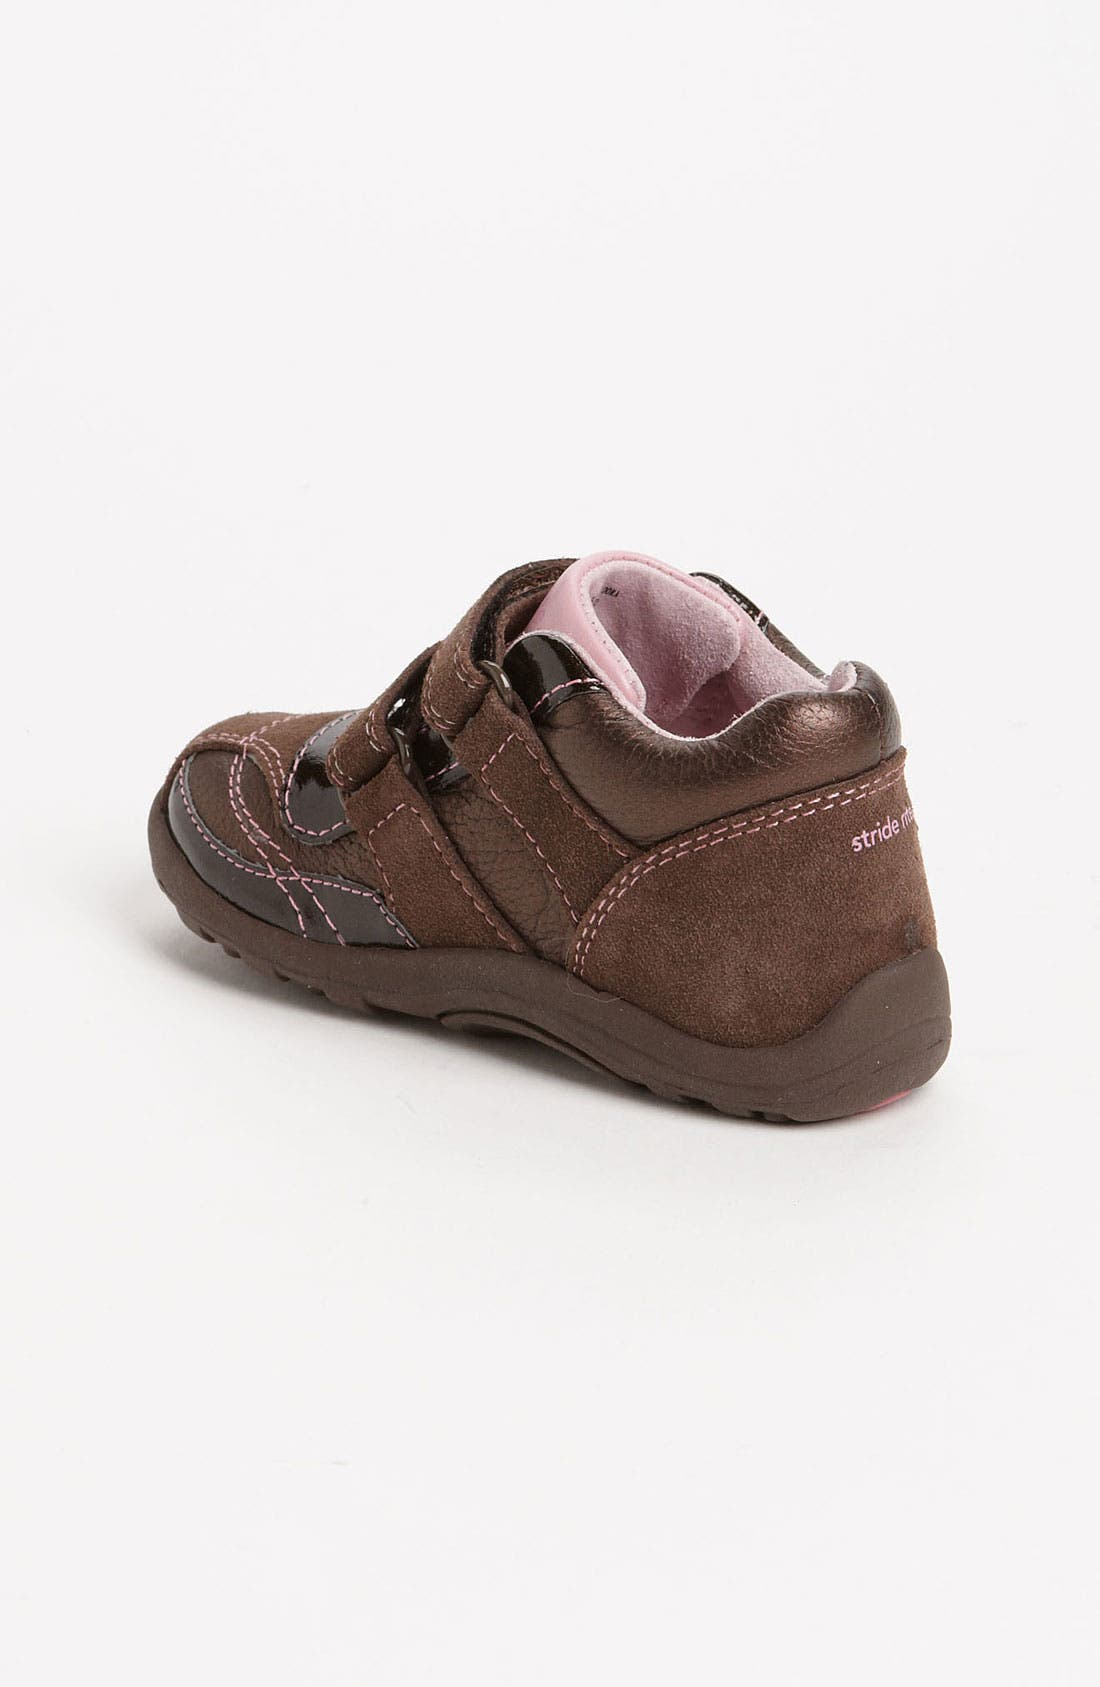 Alternate Image 2  - Stride Rite 'Darling Dora' Sneaker (Baby, Walker & Toddler)